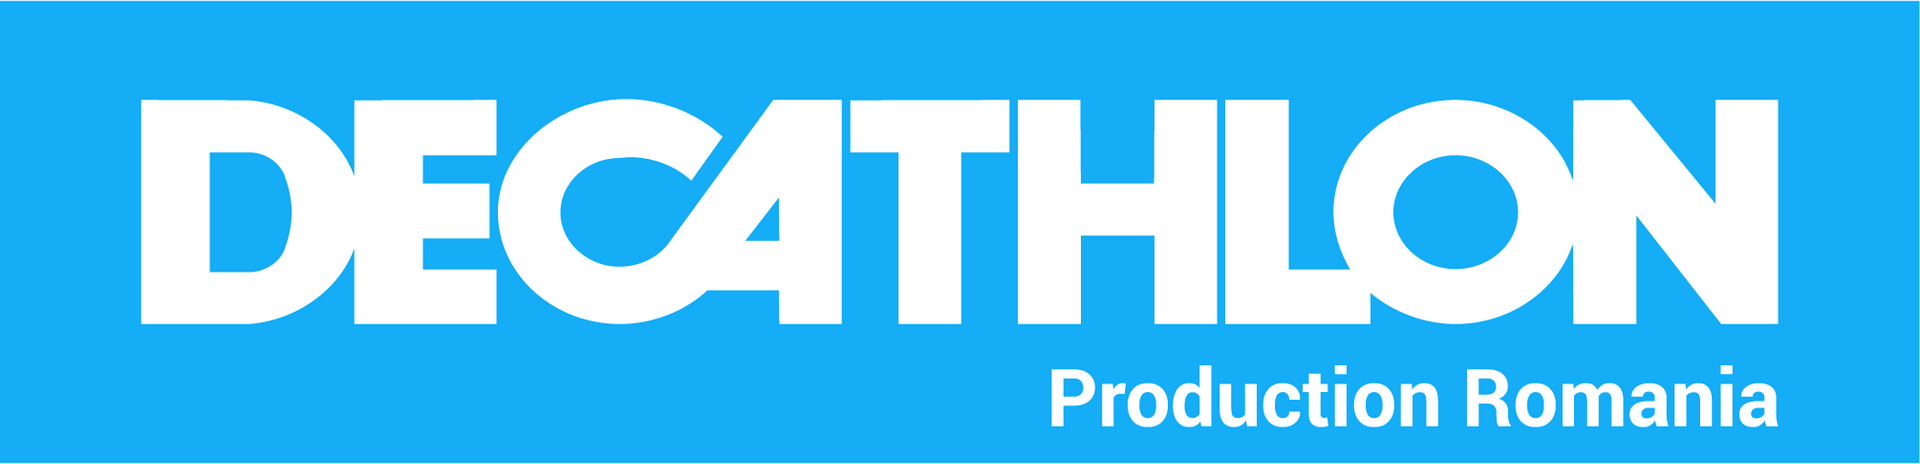 Decathlon_Logo-01